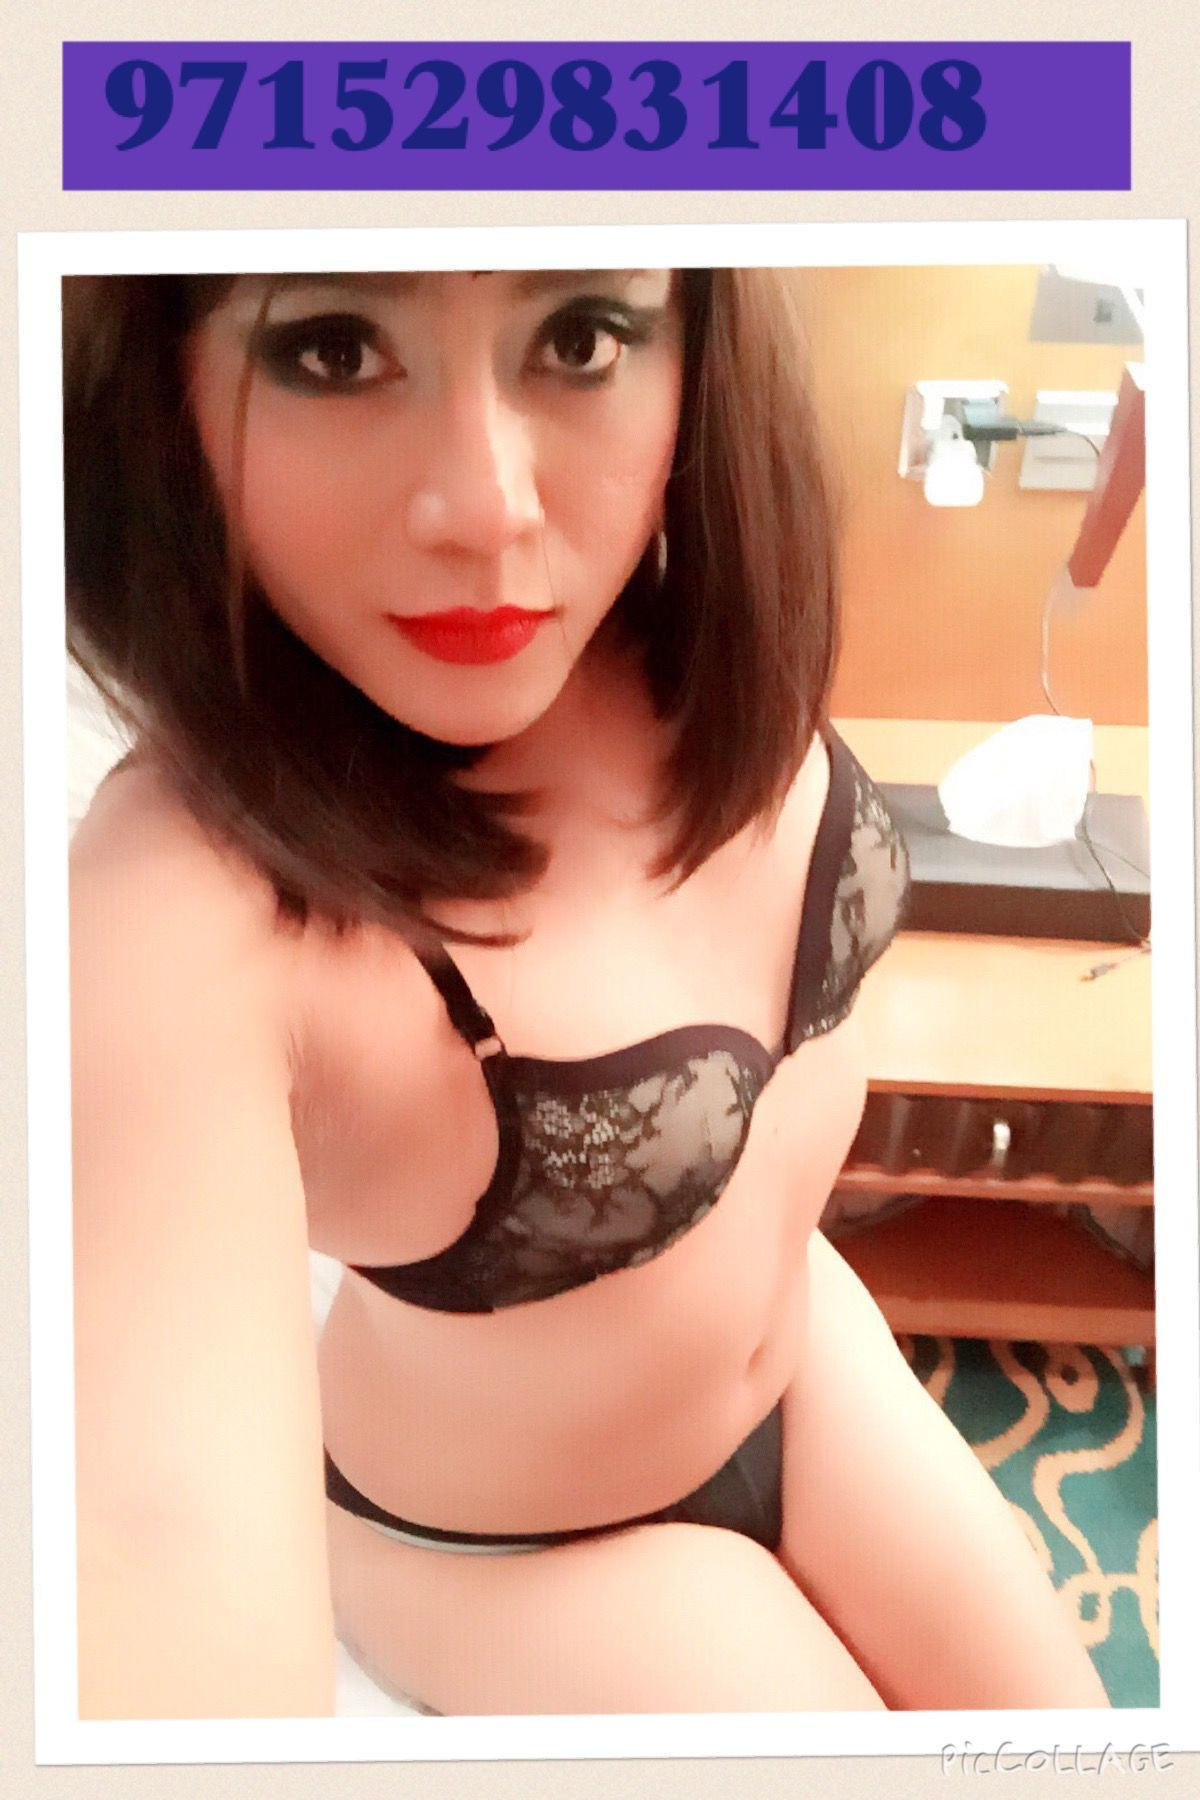 toni2 spicy, filipino transsexual escort in abu dhabi